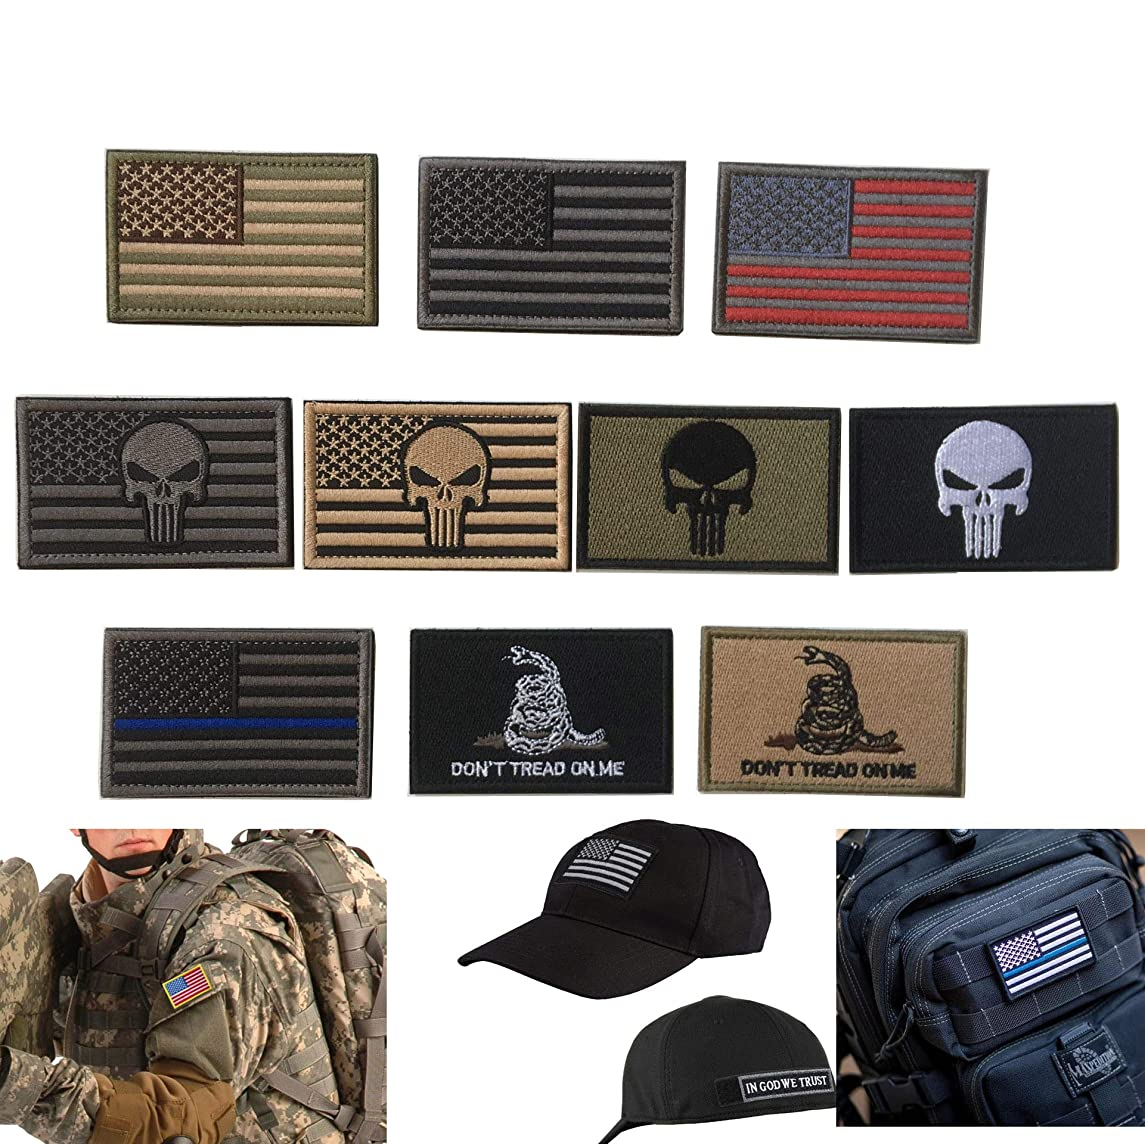 Bundle 10 Pieces US Flag Patch American Flag Punisher Velcro Patches Badges, Don't Tread On Me Fully Embroidered Tactical Military Morale Patches Set (A-Mixed 10 Pieces)